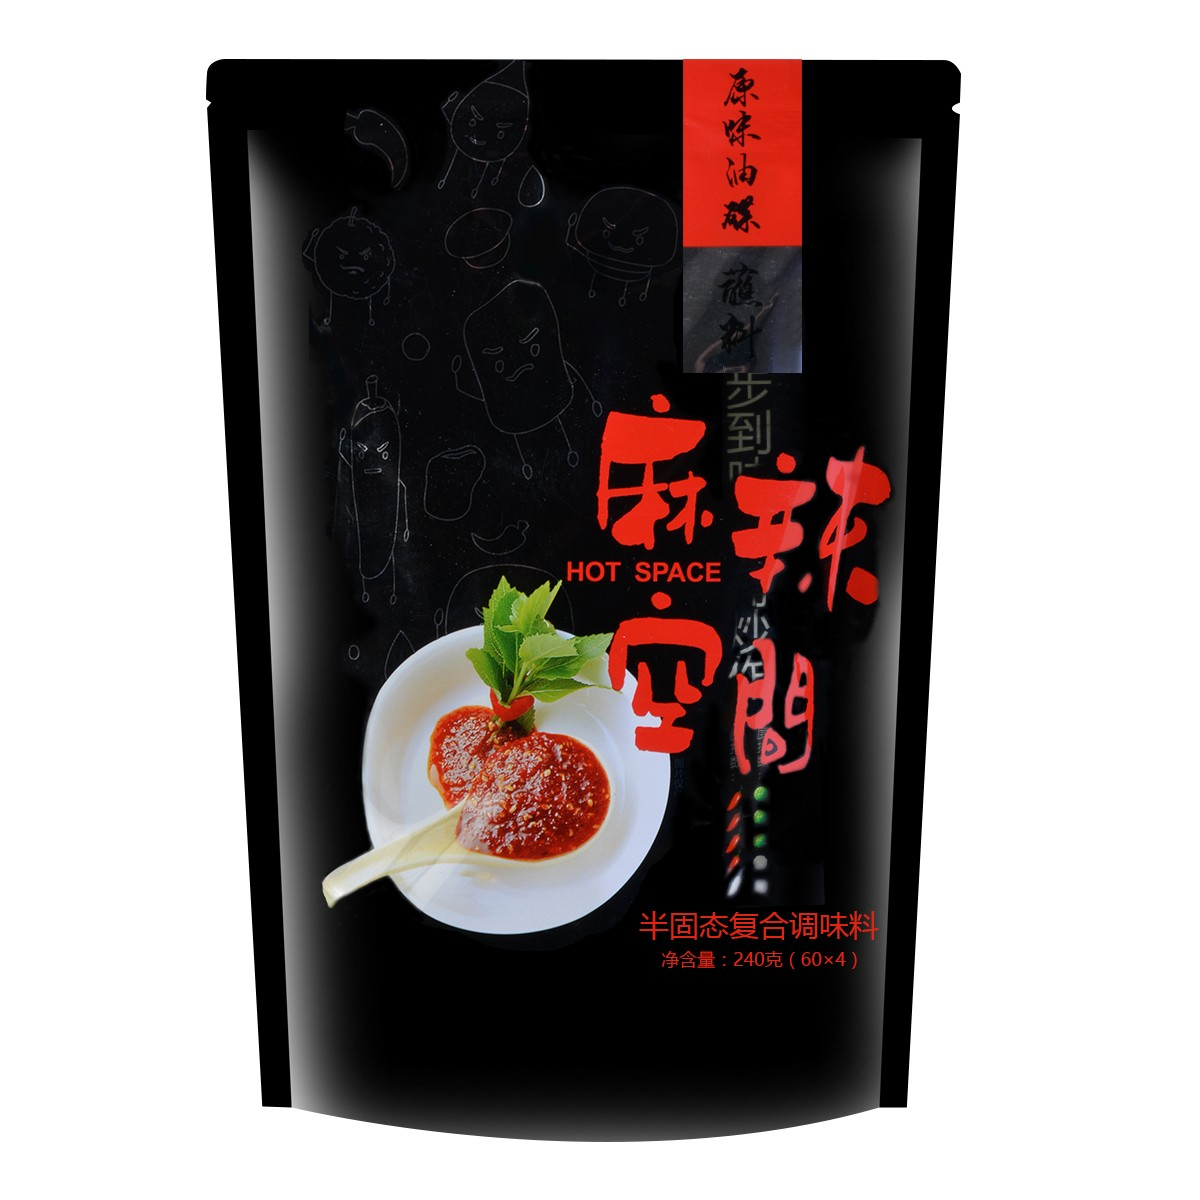 HOT SPACE Dipping Sauce 240g